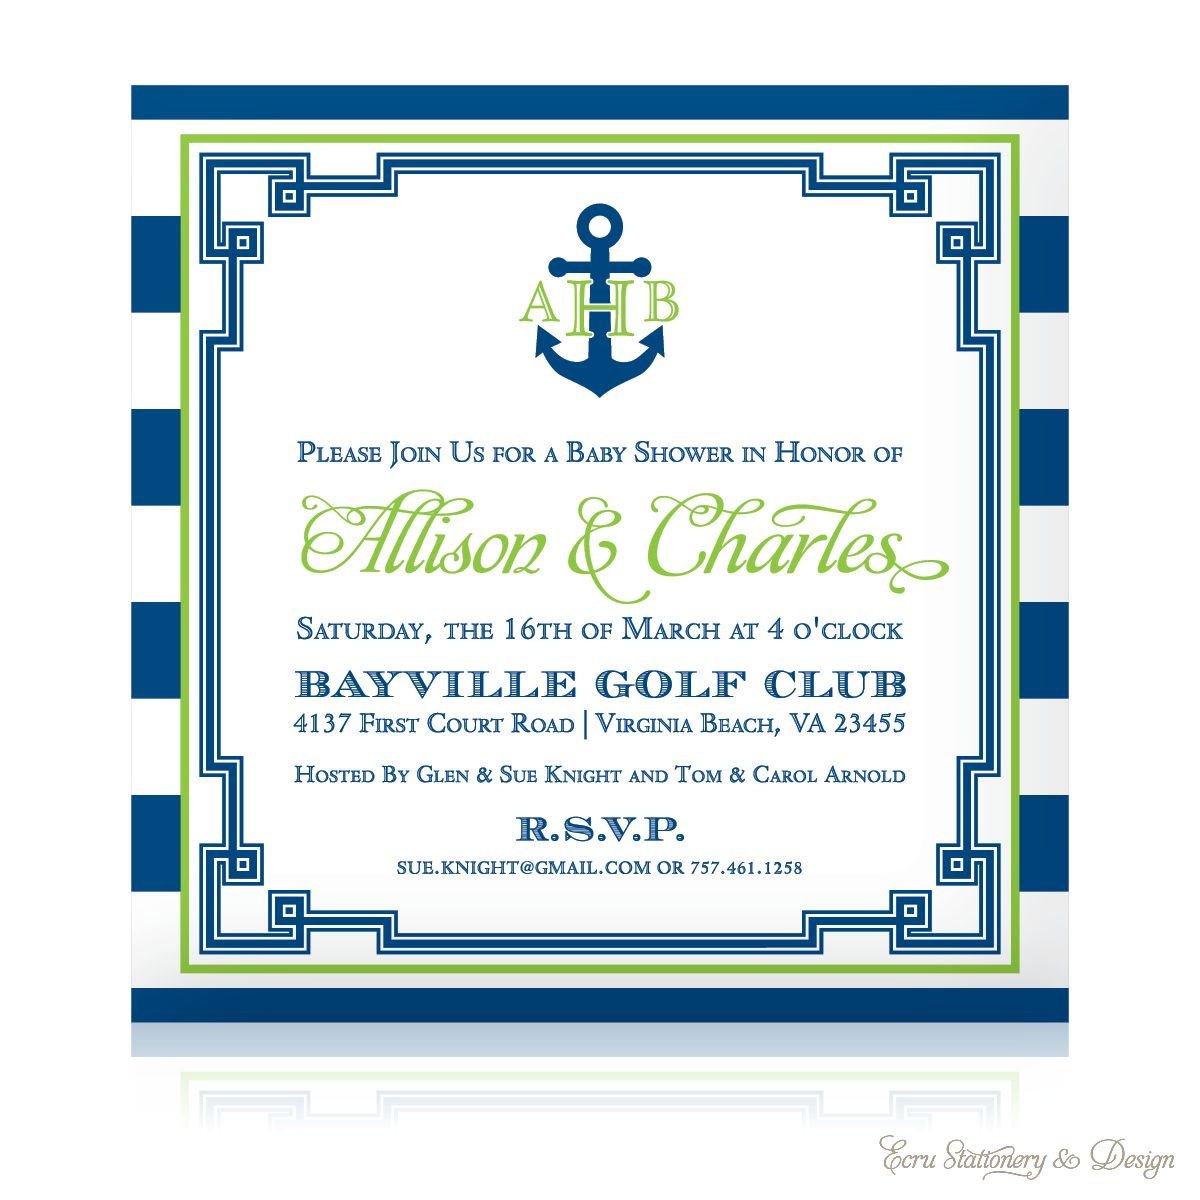 Comproducts553978 Sailboat Nautical Baby Shower Invitation Printable ...